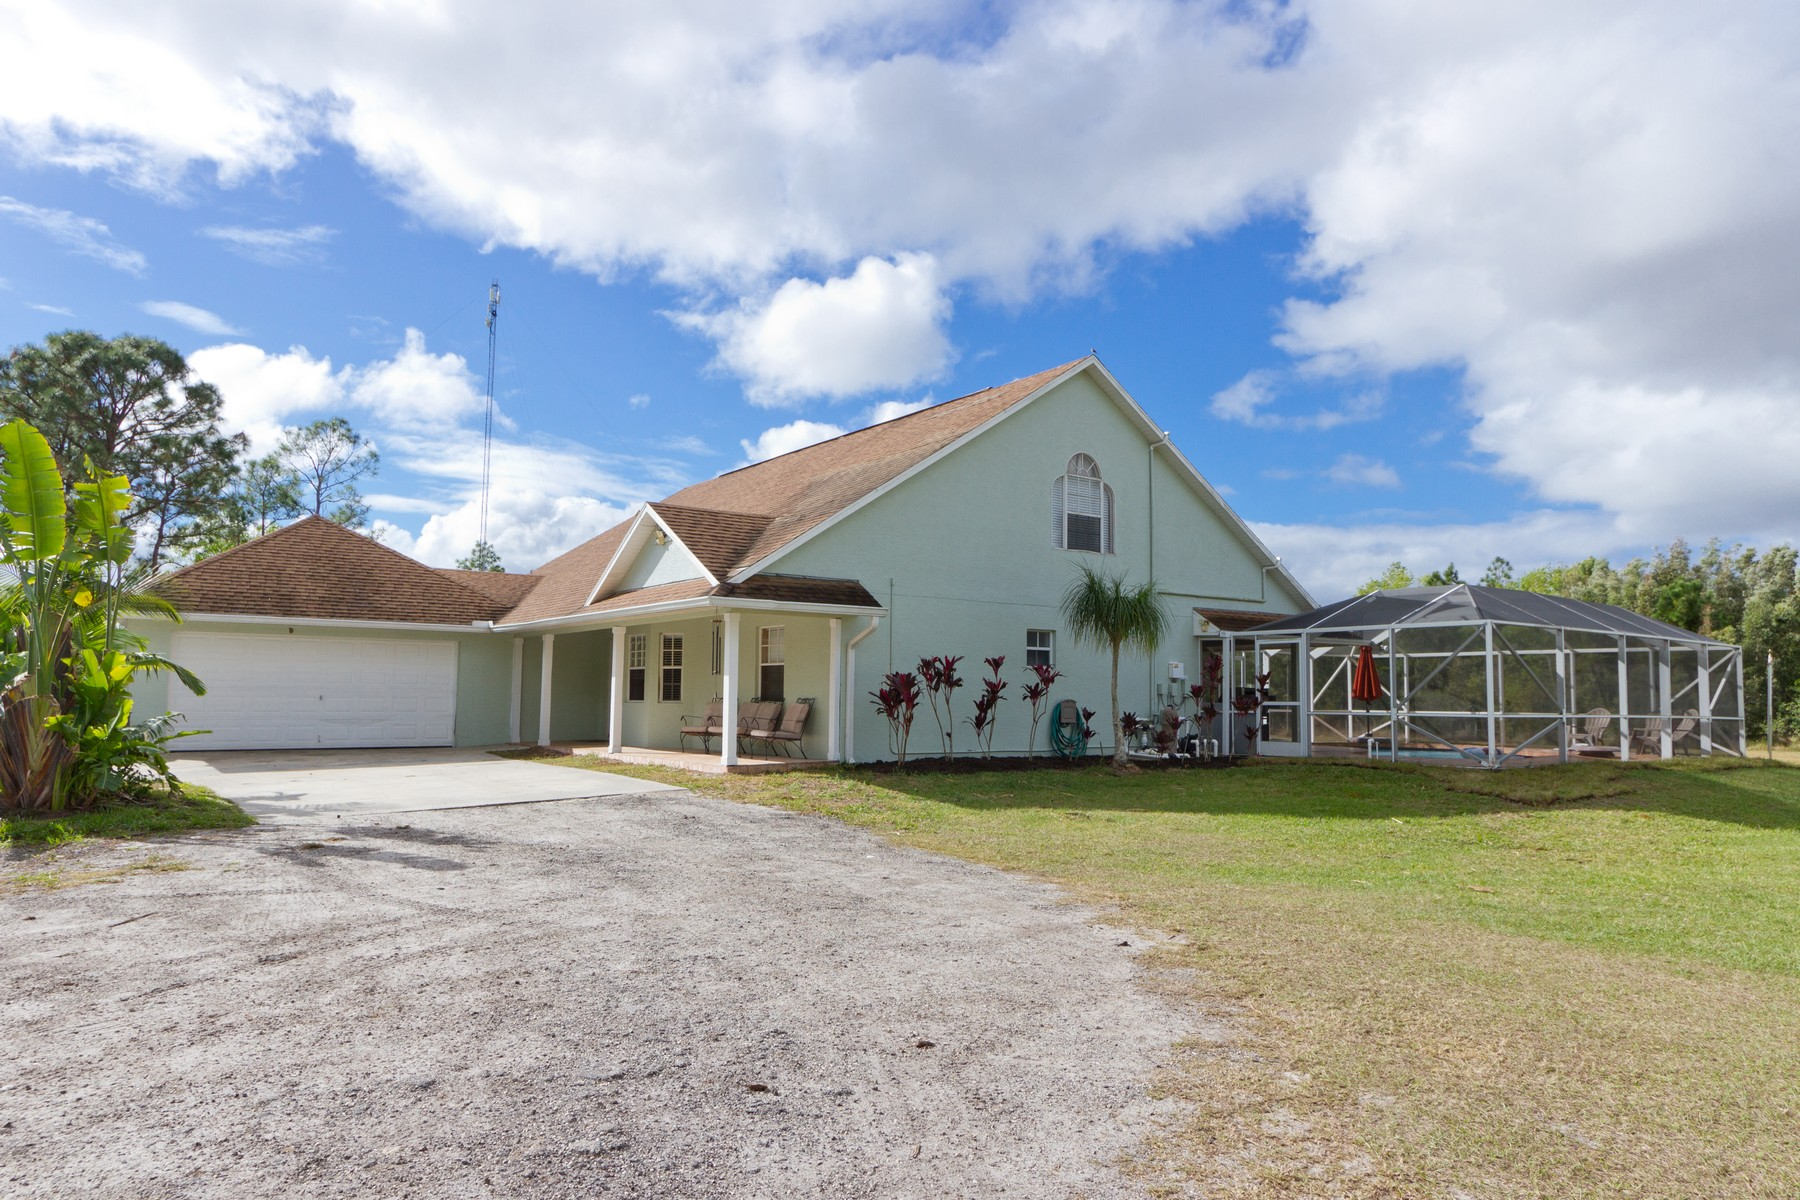 Maison unifamiliale pour l Vente à 5 Acre- Waterfront Home 12925 79th Street Fellsmere, Florida, 32948 États-Unis